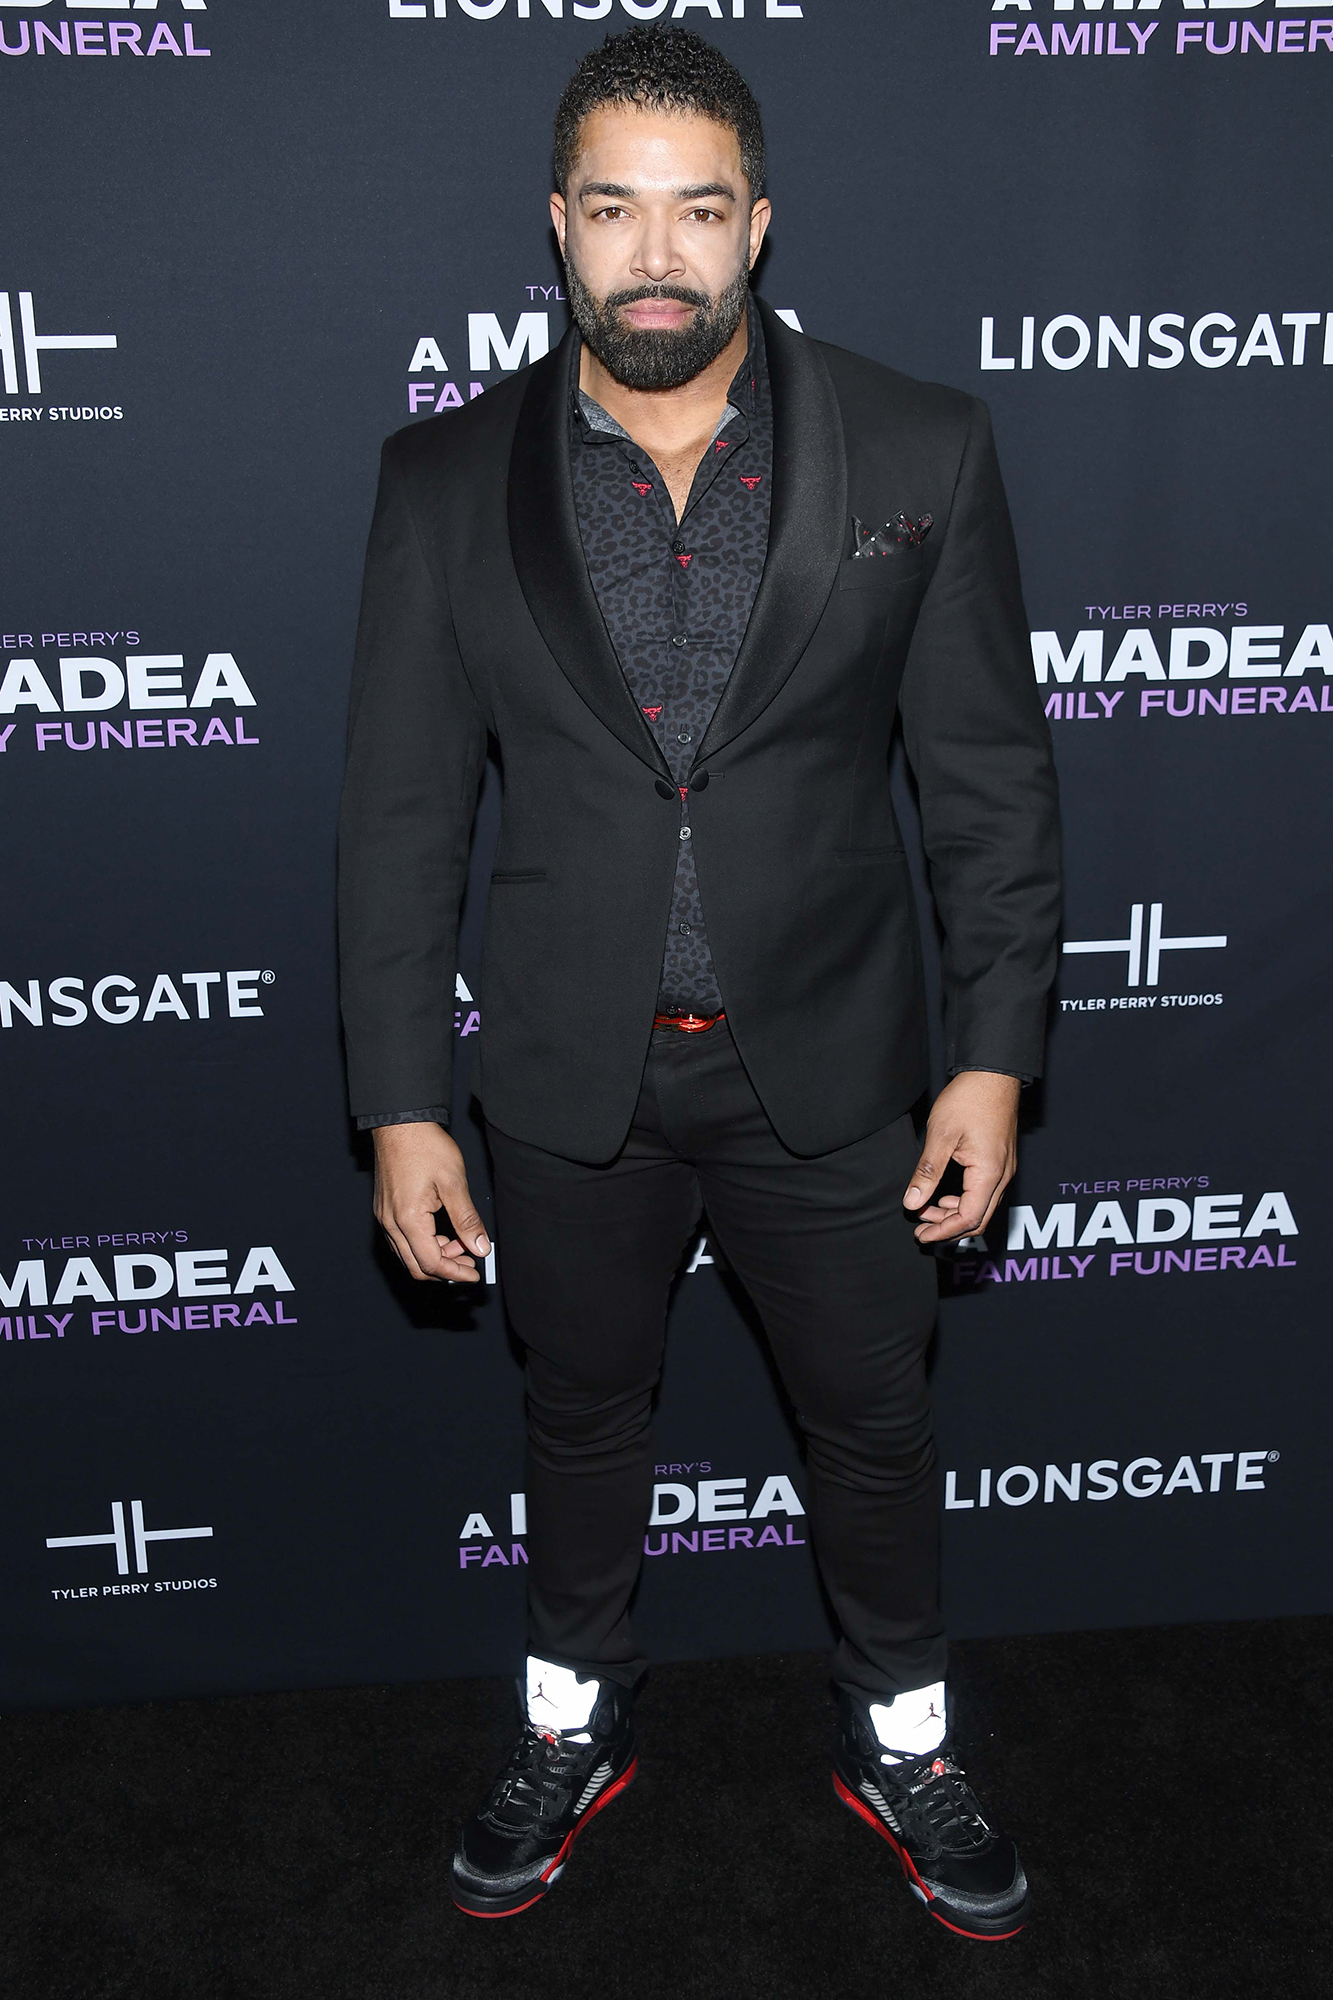 David Otunga Reveals the Ways His 9-Year-Old Son With Ex Jennifer Hudson Takes After Him - David Otunga attends a screening for Tyler Perry's 'A Madea Family Funeral at SVA Theater on February 25, 2019 in New York City.